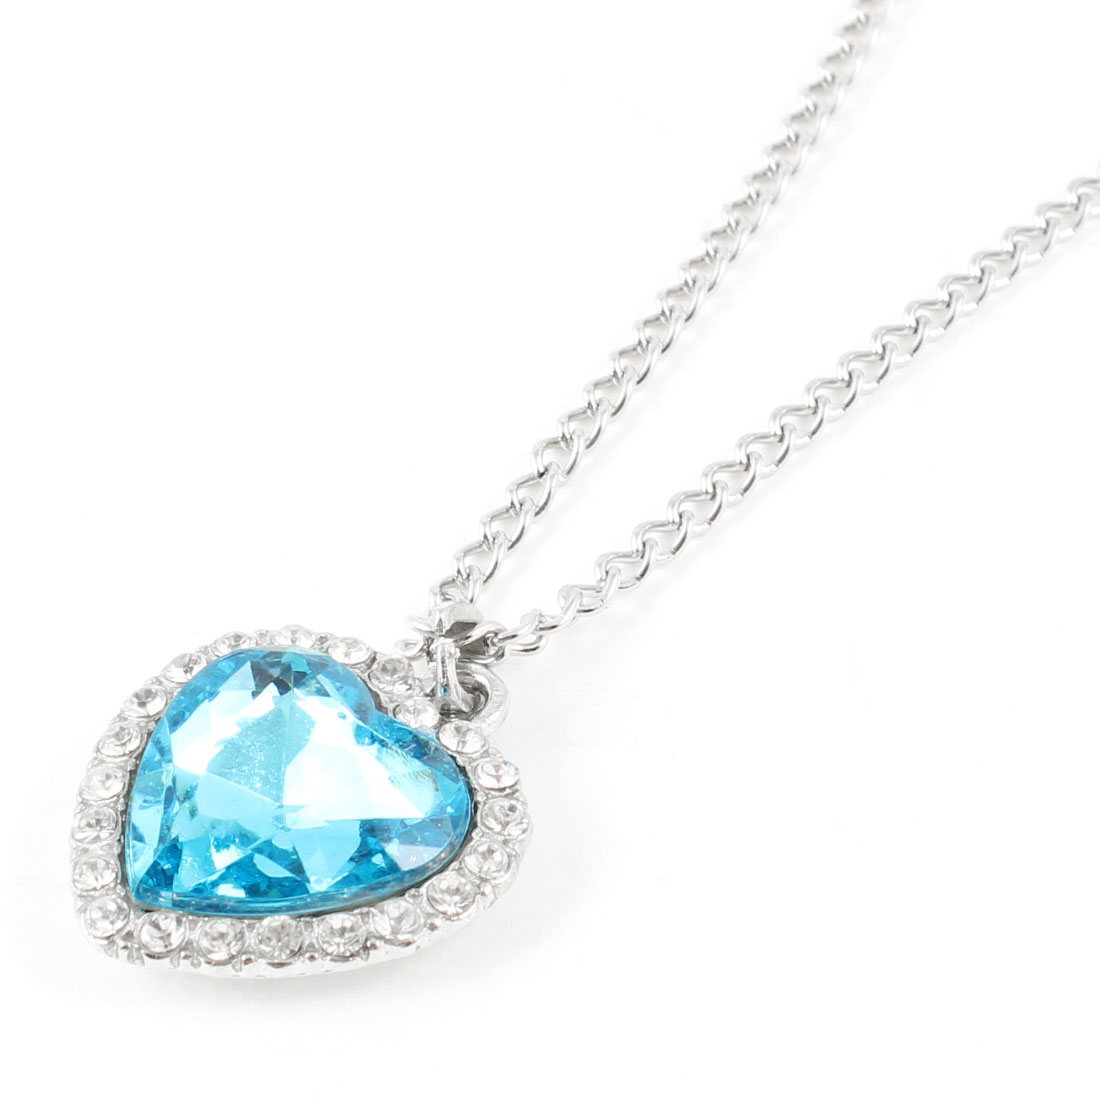 Lady Turquoise Plastic Crystal Decor Heart Shaped Pendant Metal Necklace